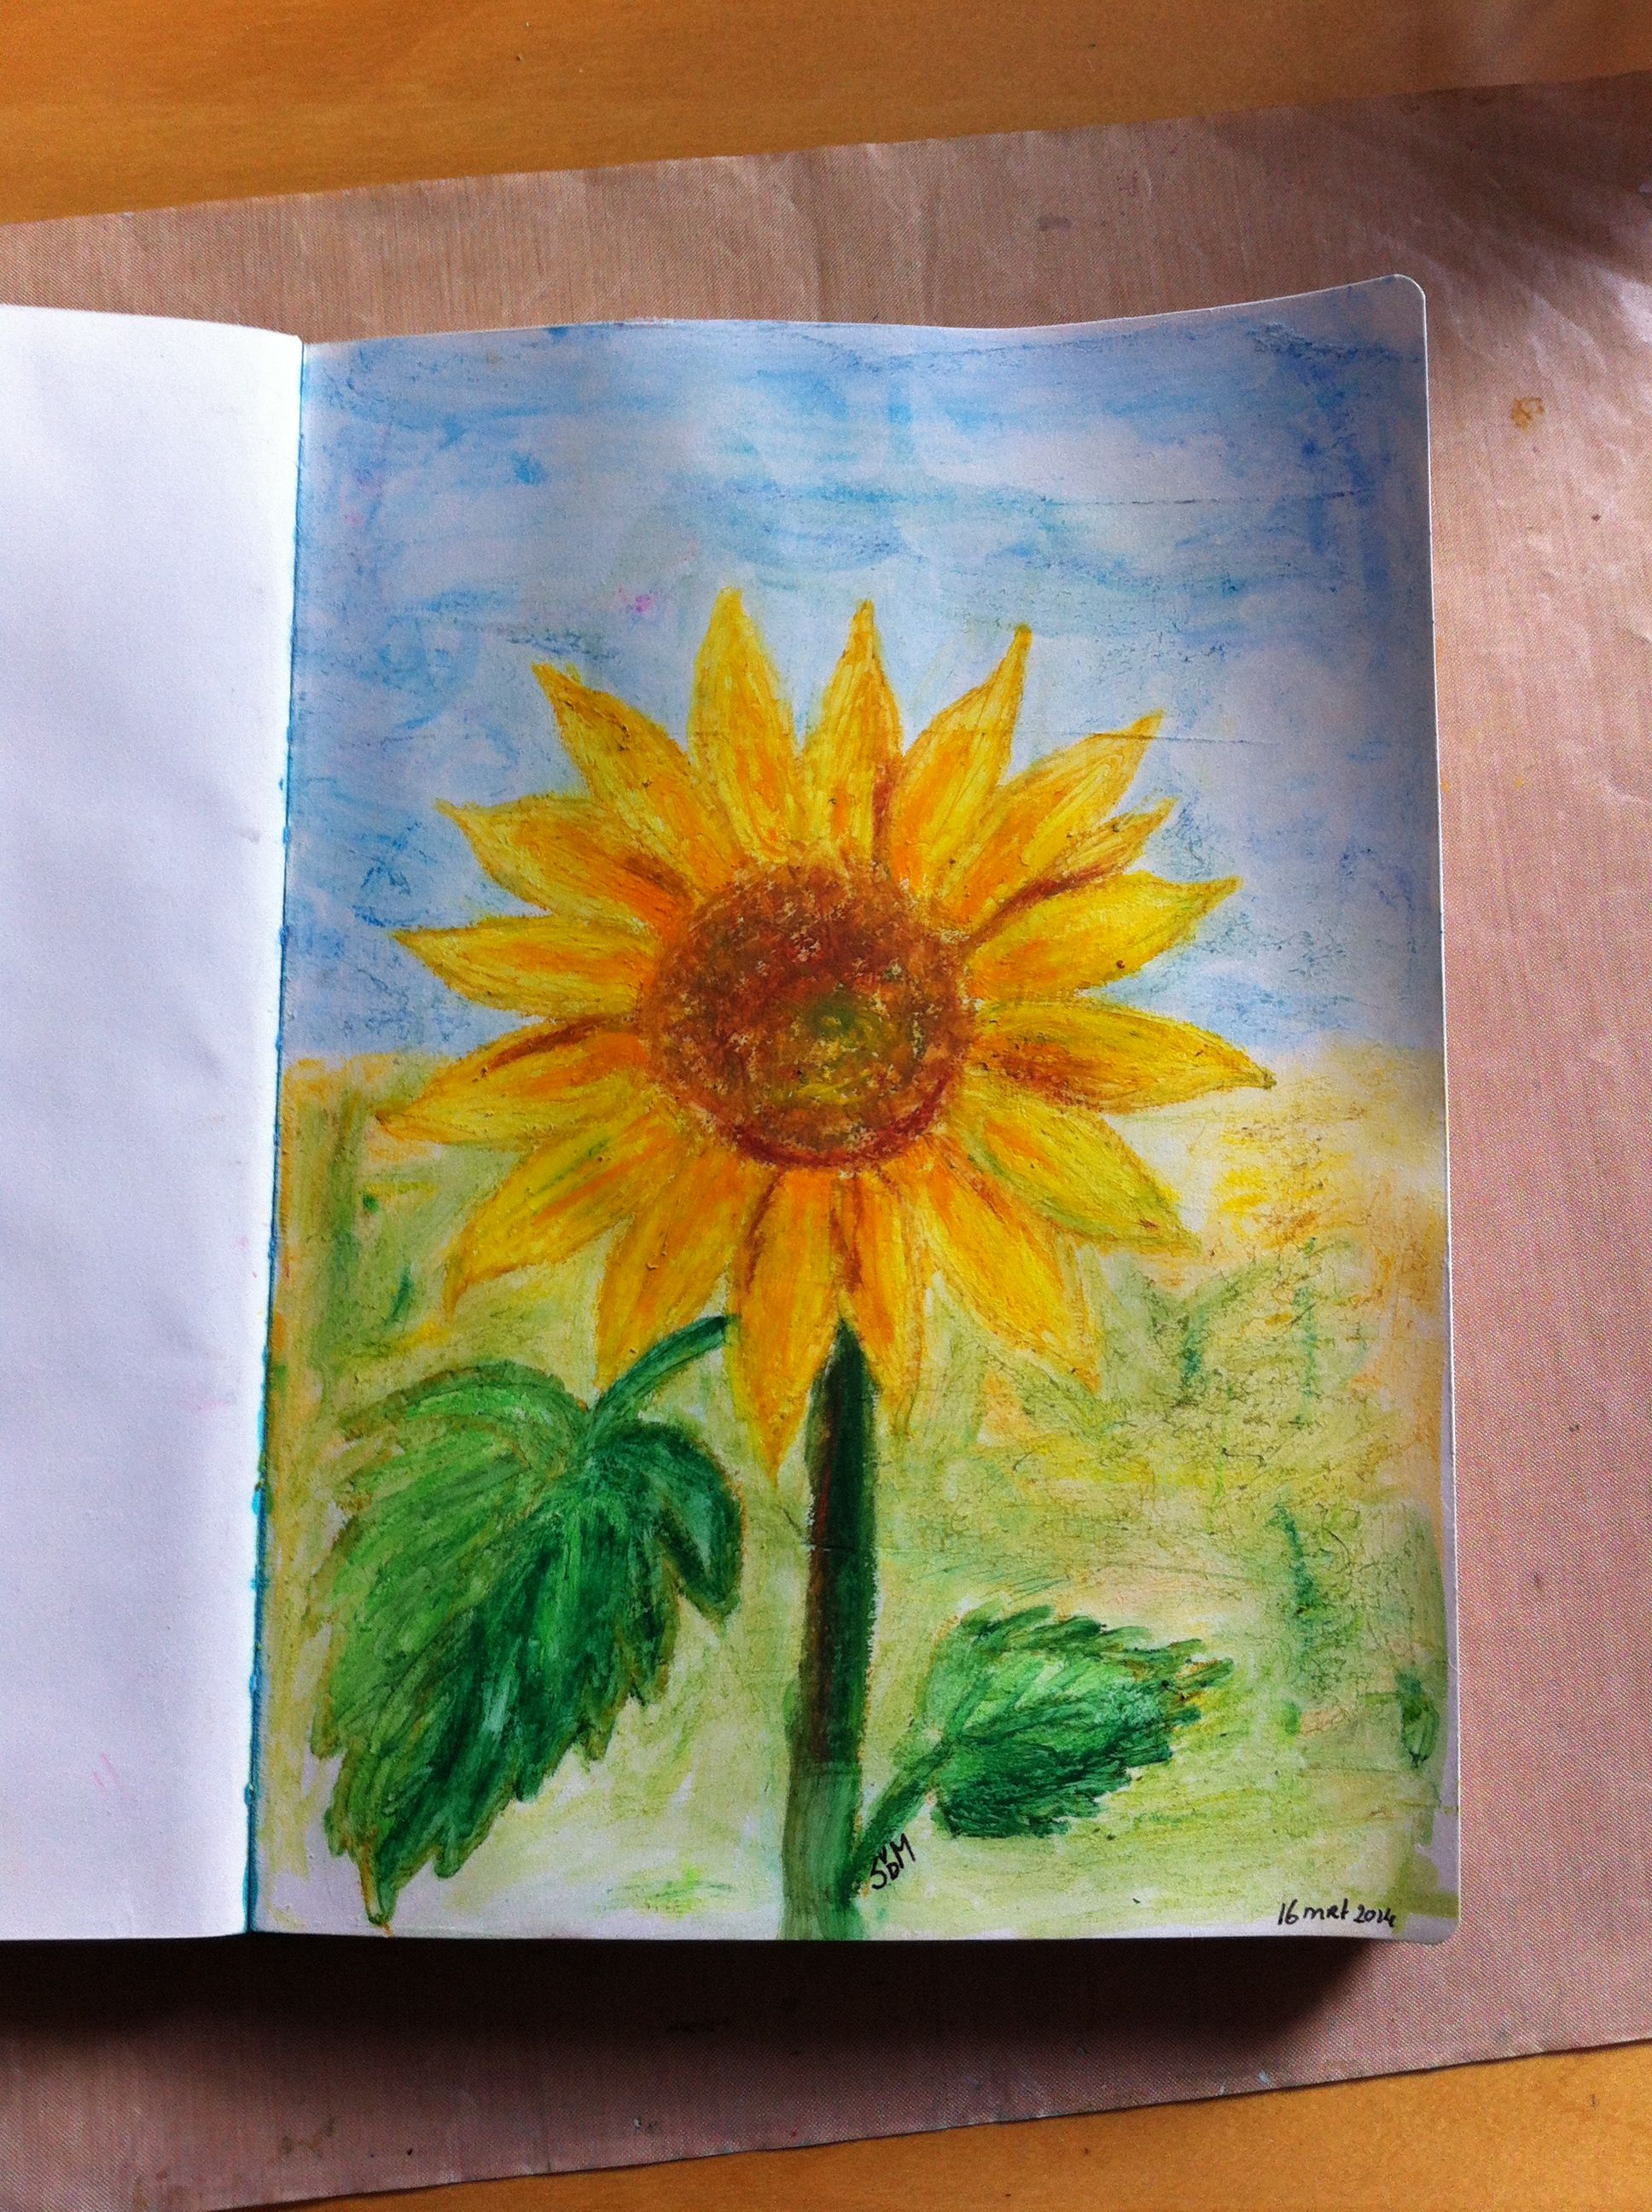 Sunflower made with oil pastels.